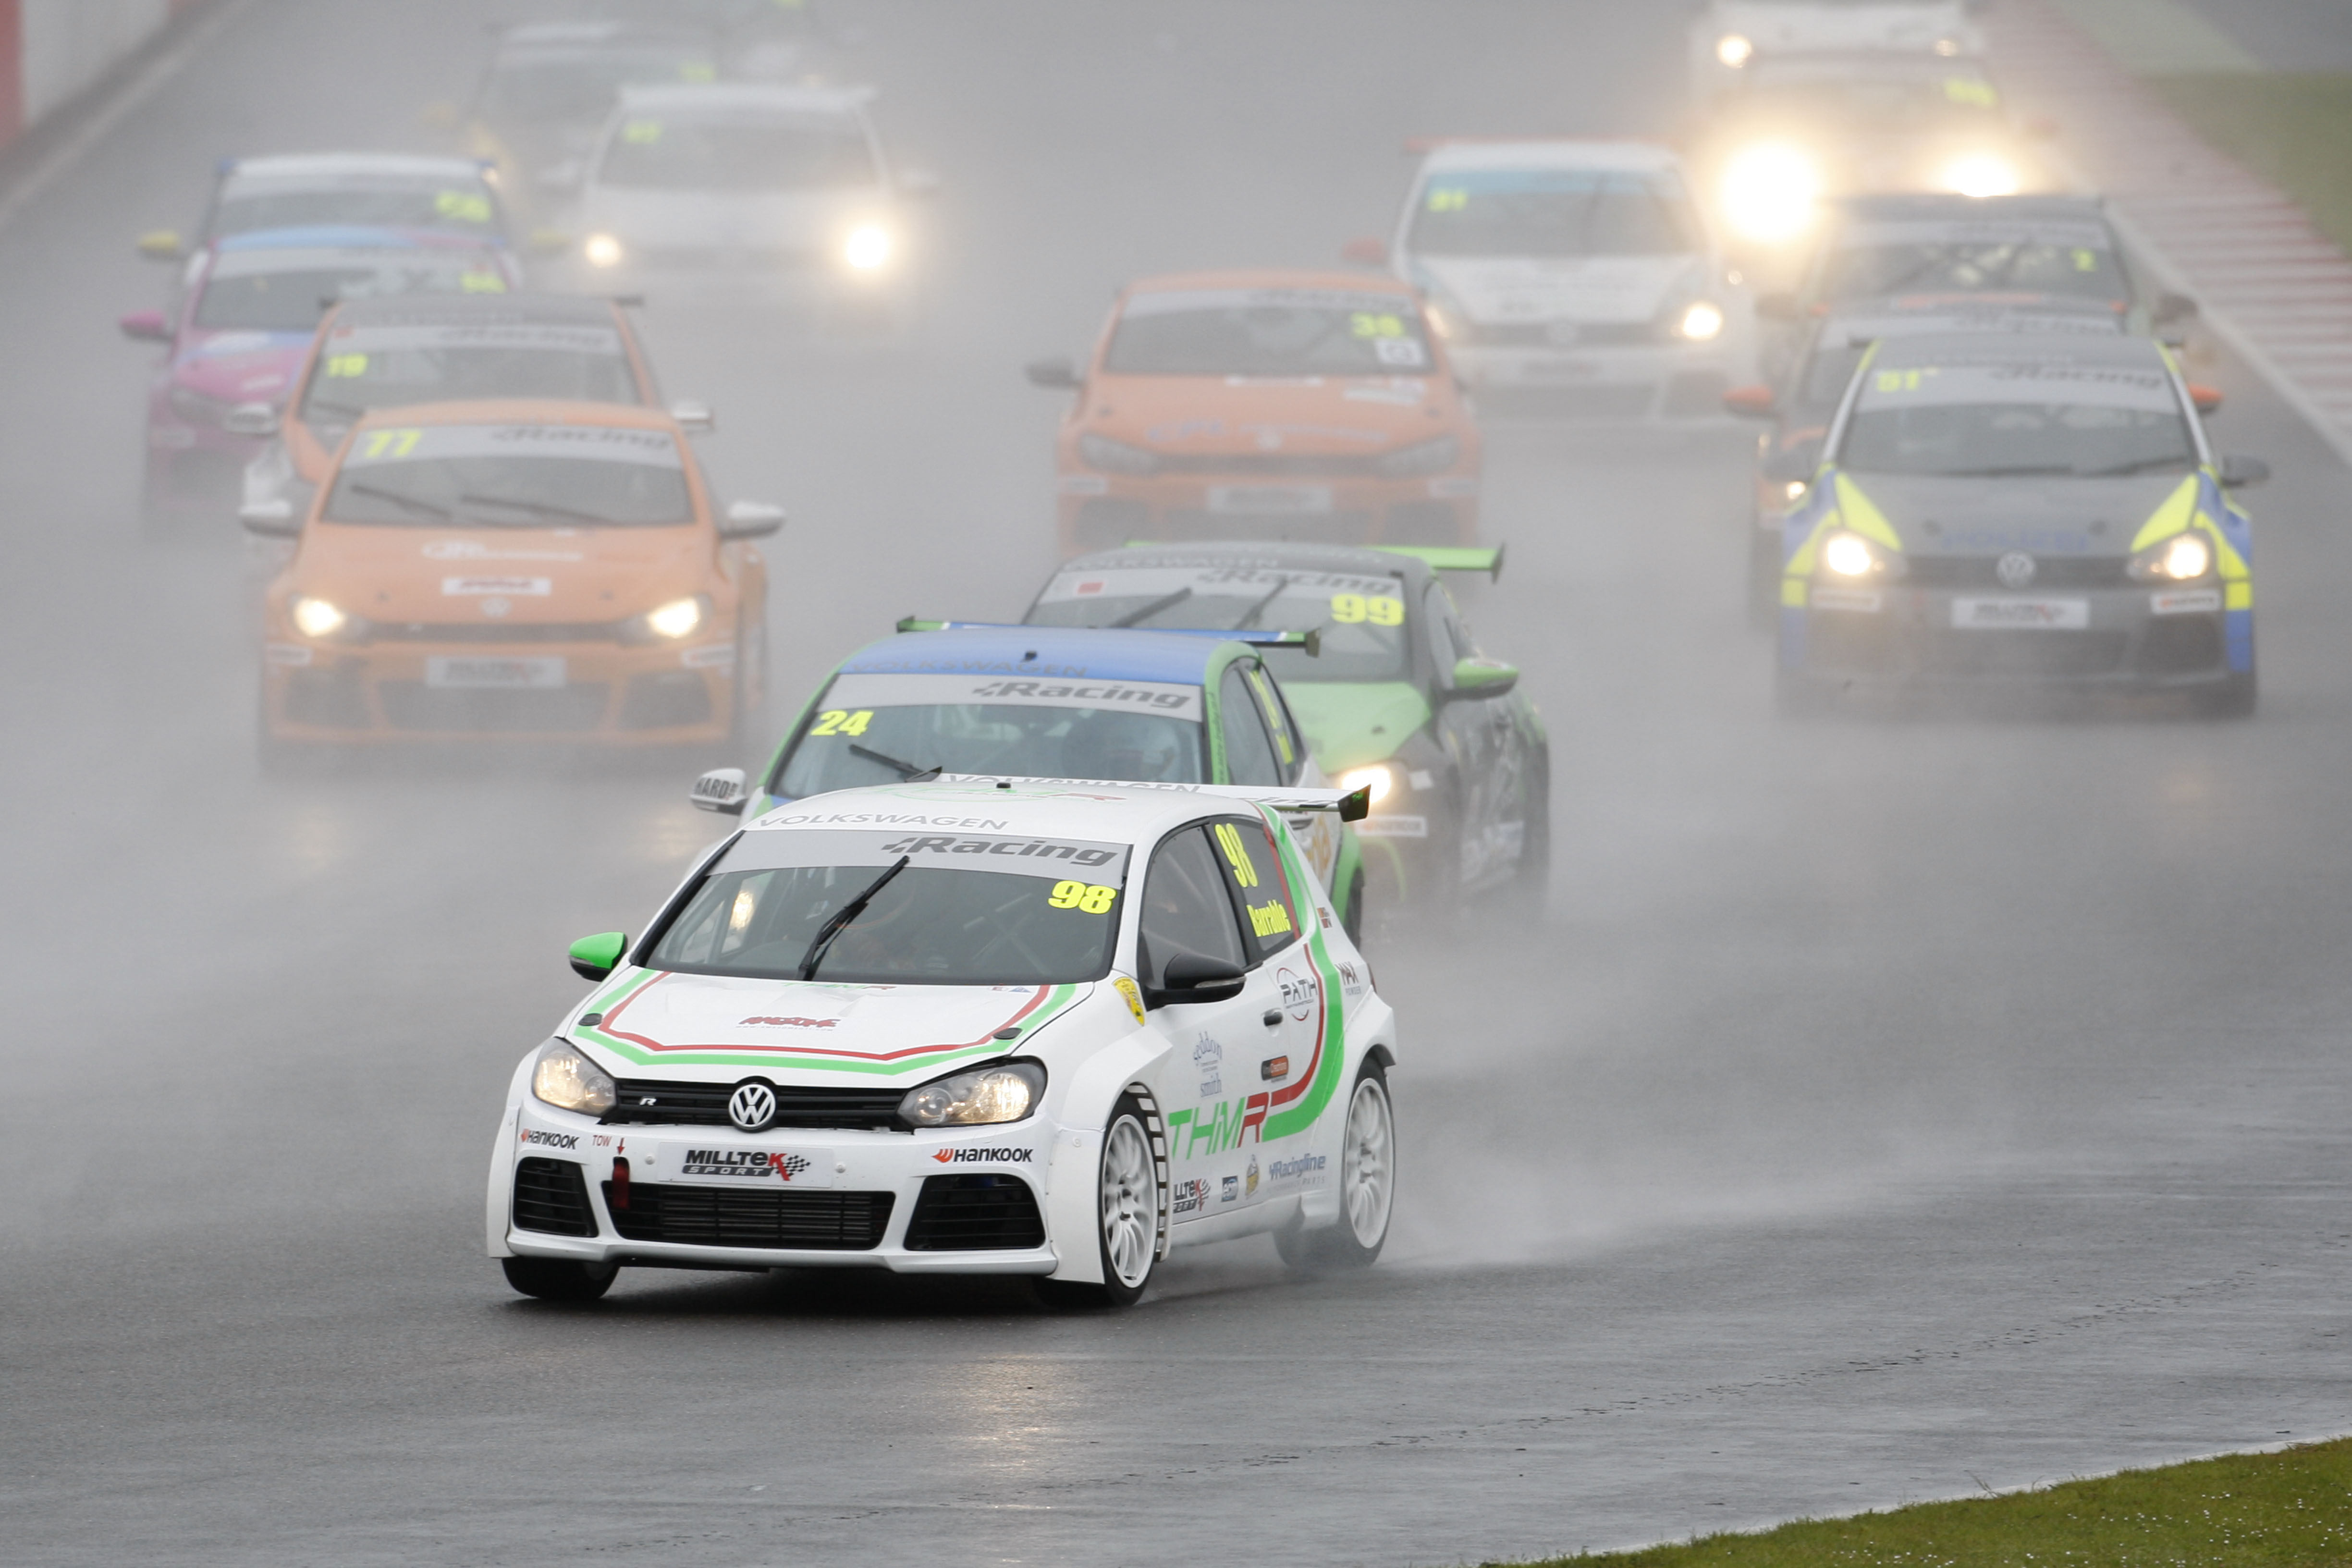 THM Racing - very wet race at Silverstone 2015